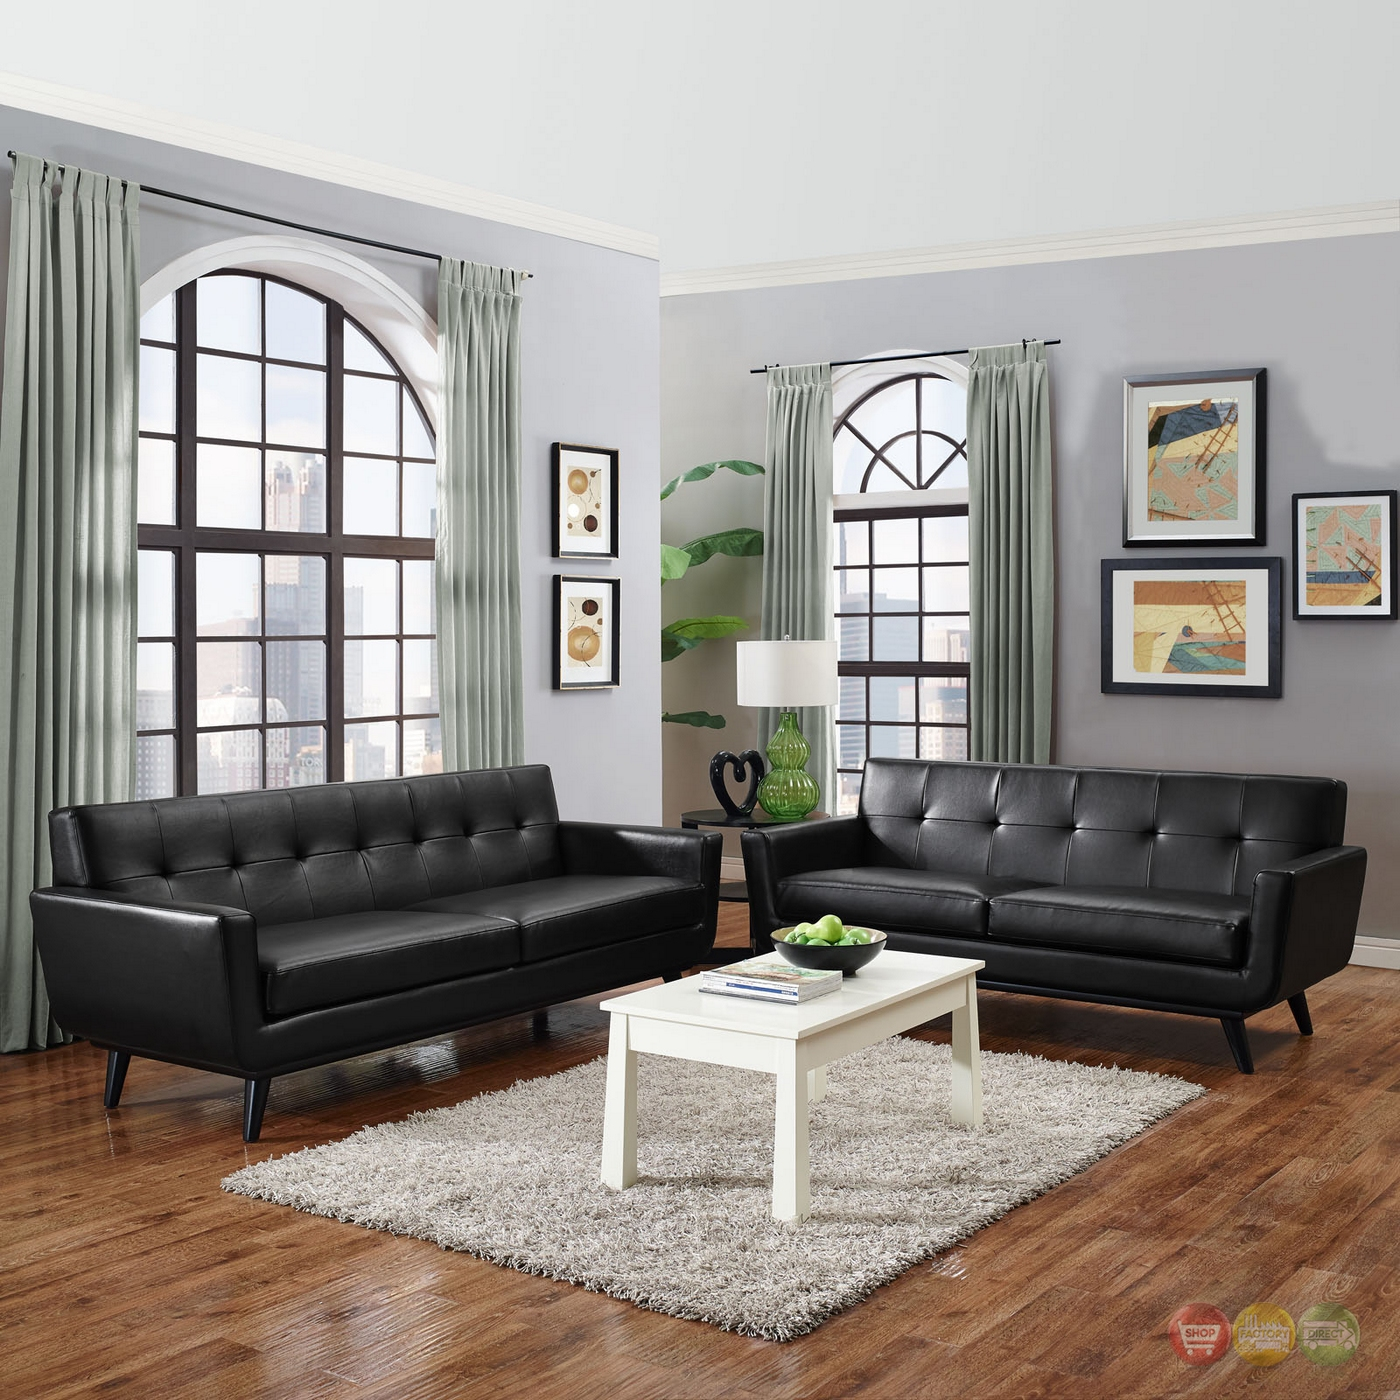 Engage contemporary 2pc button tufted leather living room set black